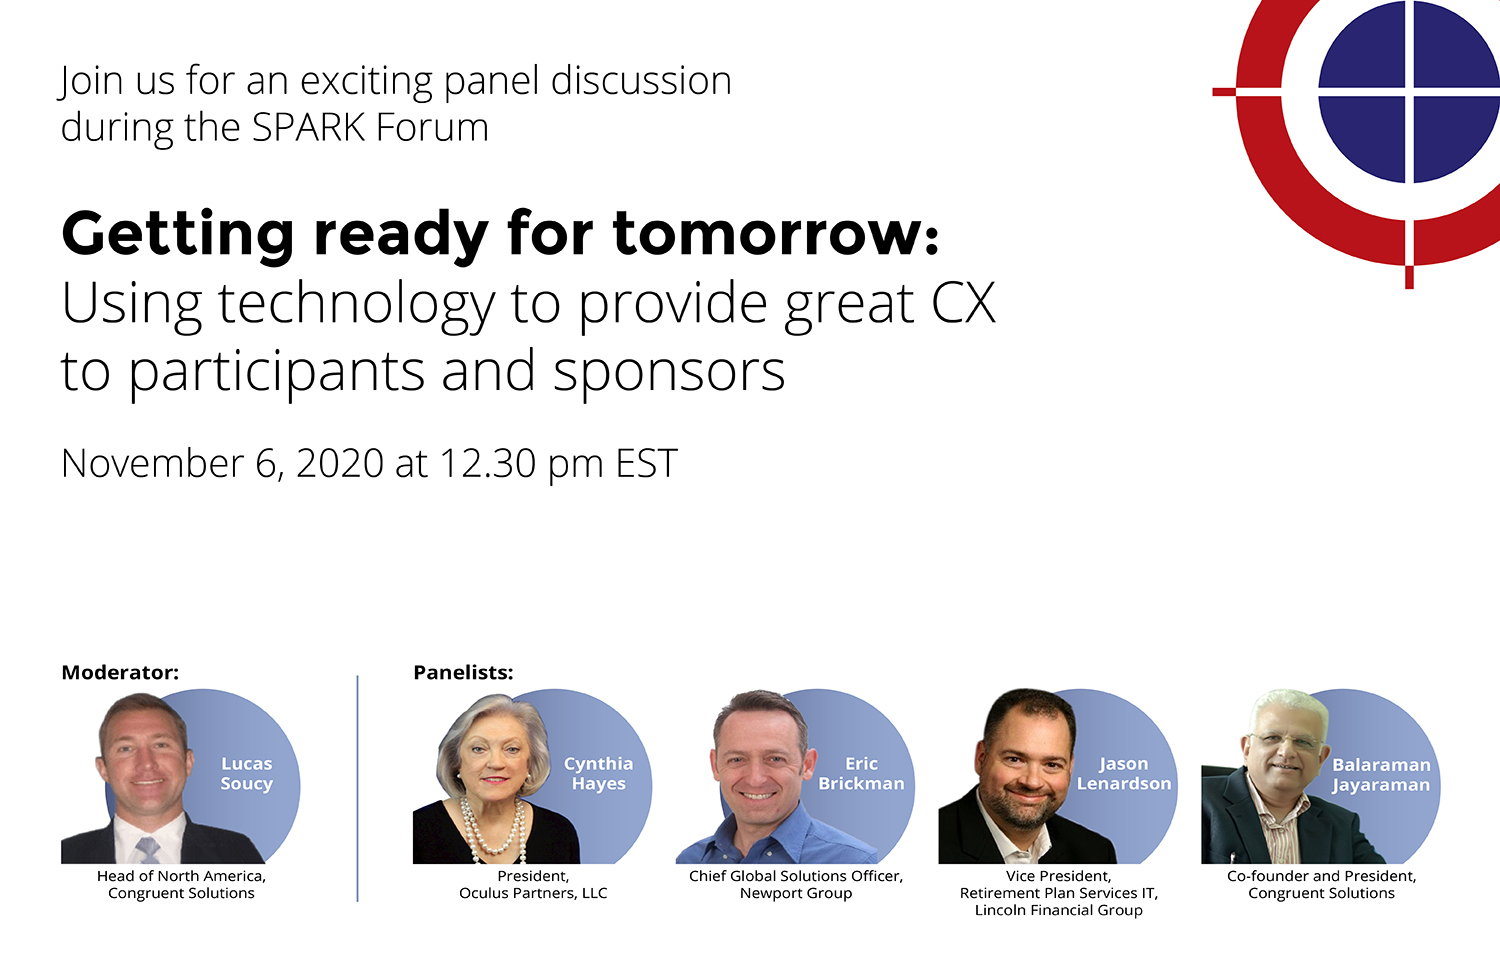 Using technology to provide great CX to participants and sponsors